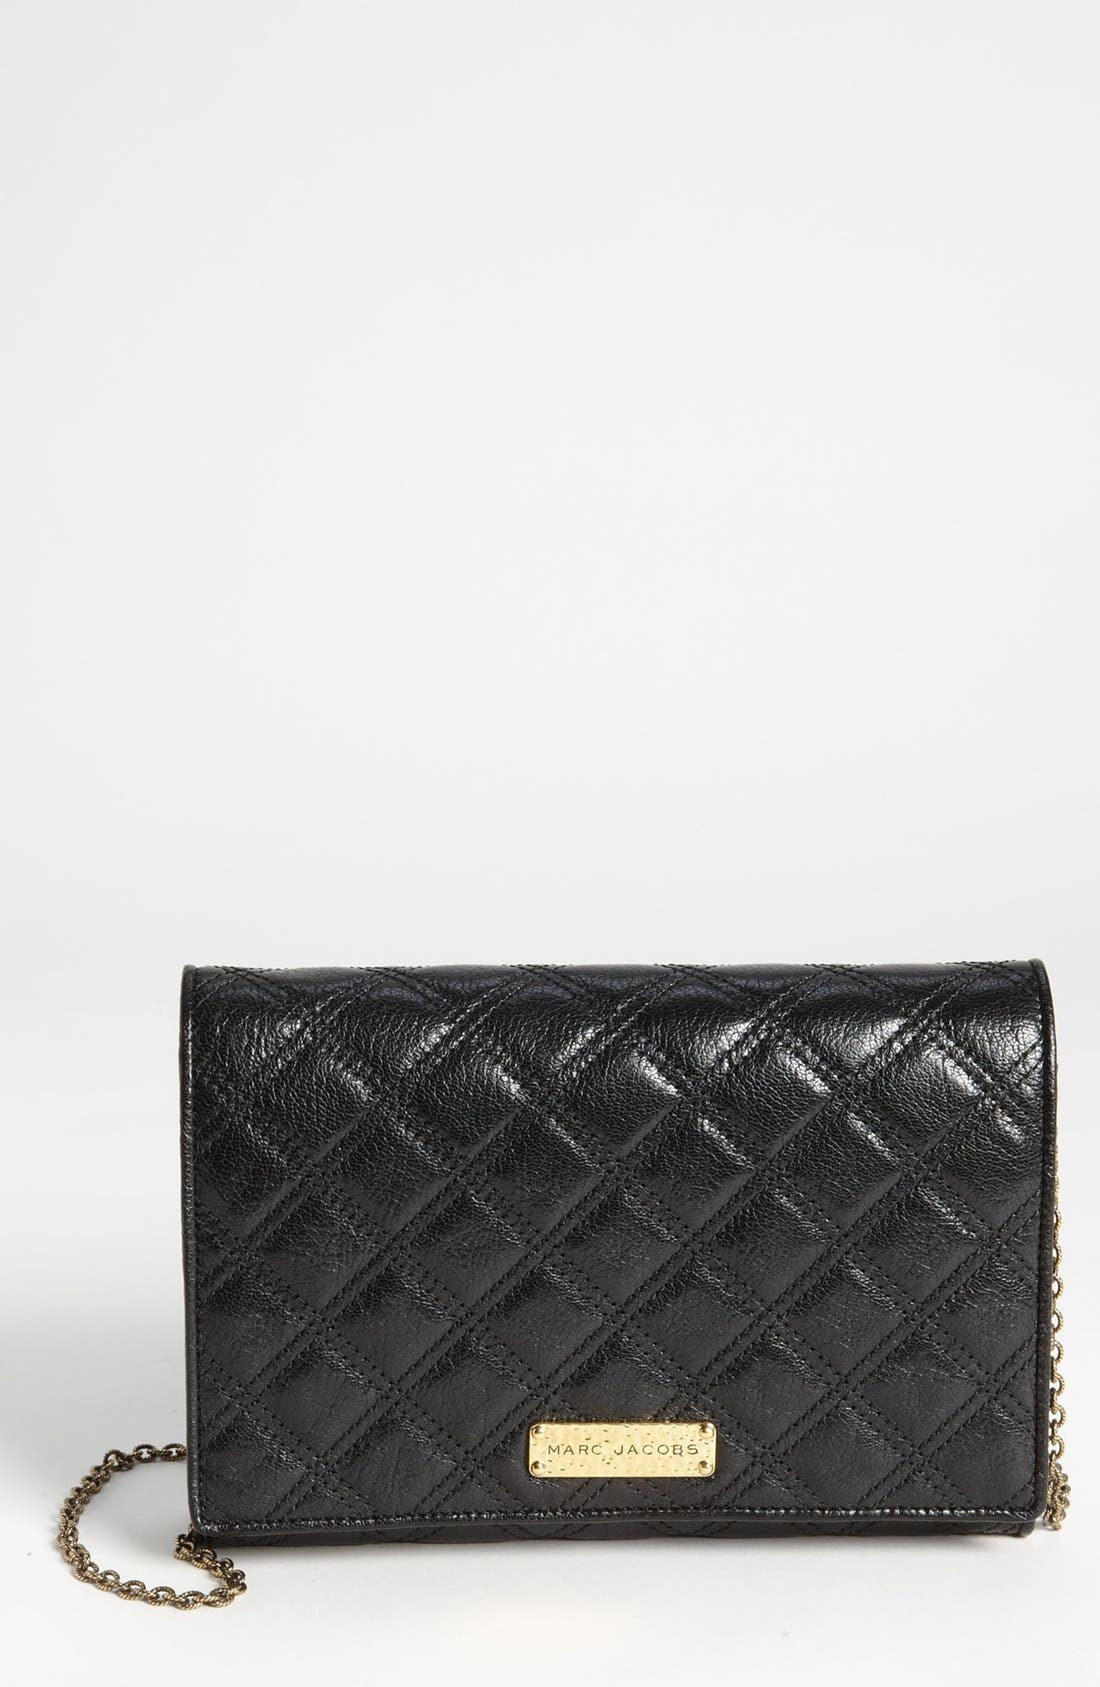 Alternate Image 1 Selected - MARC JACOBS 'Baroque All In One' Leather Shoulder Bag